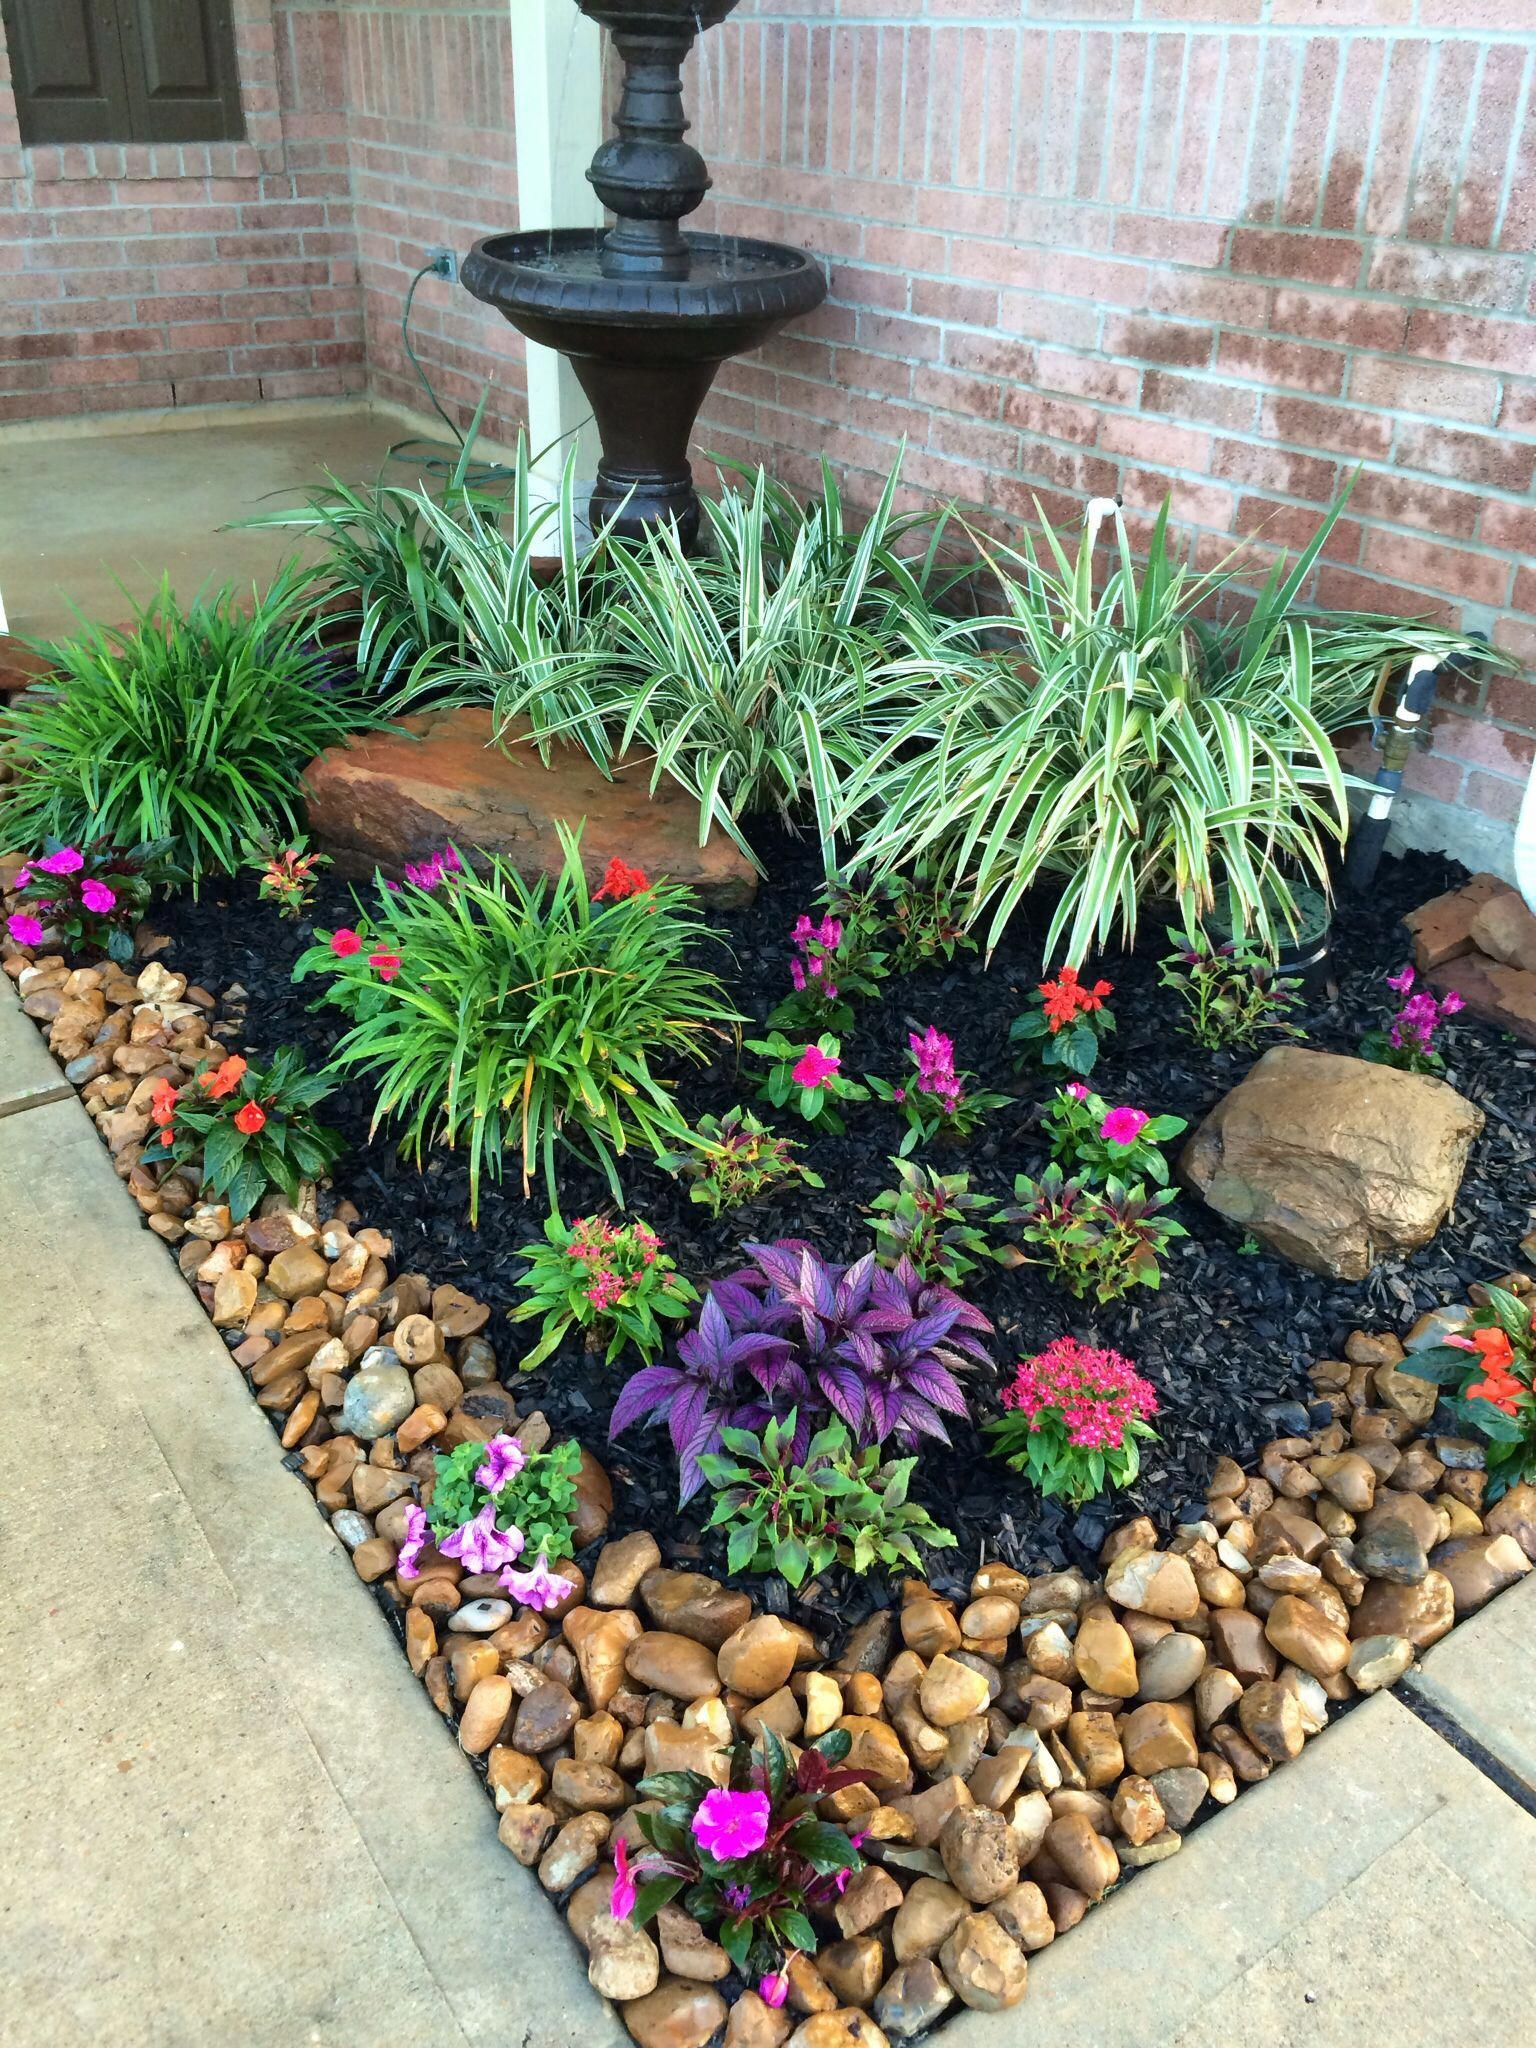 Behind The Weather Gets Warm A Smattering Of Flowers And Flora And Fauna Gives Your U Front Yard Garden Design Front Yard Landscaping Design Garden Yard Ideas